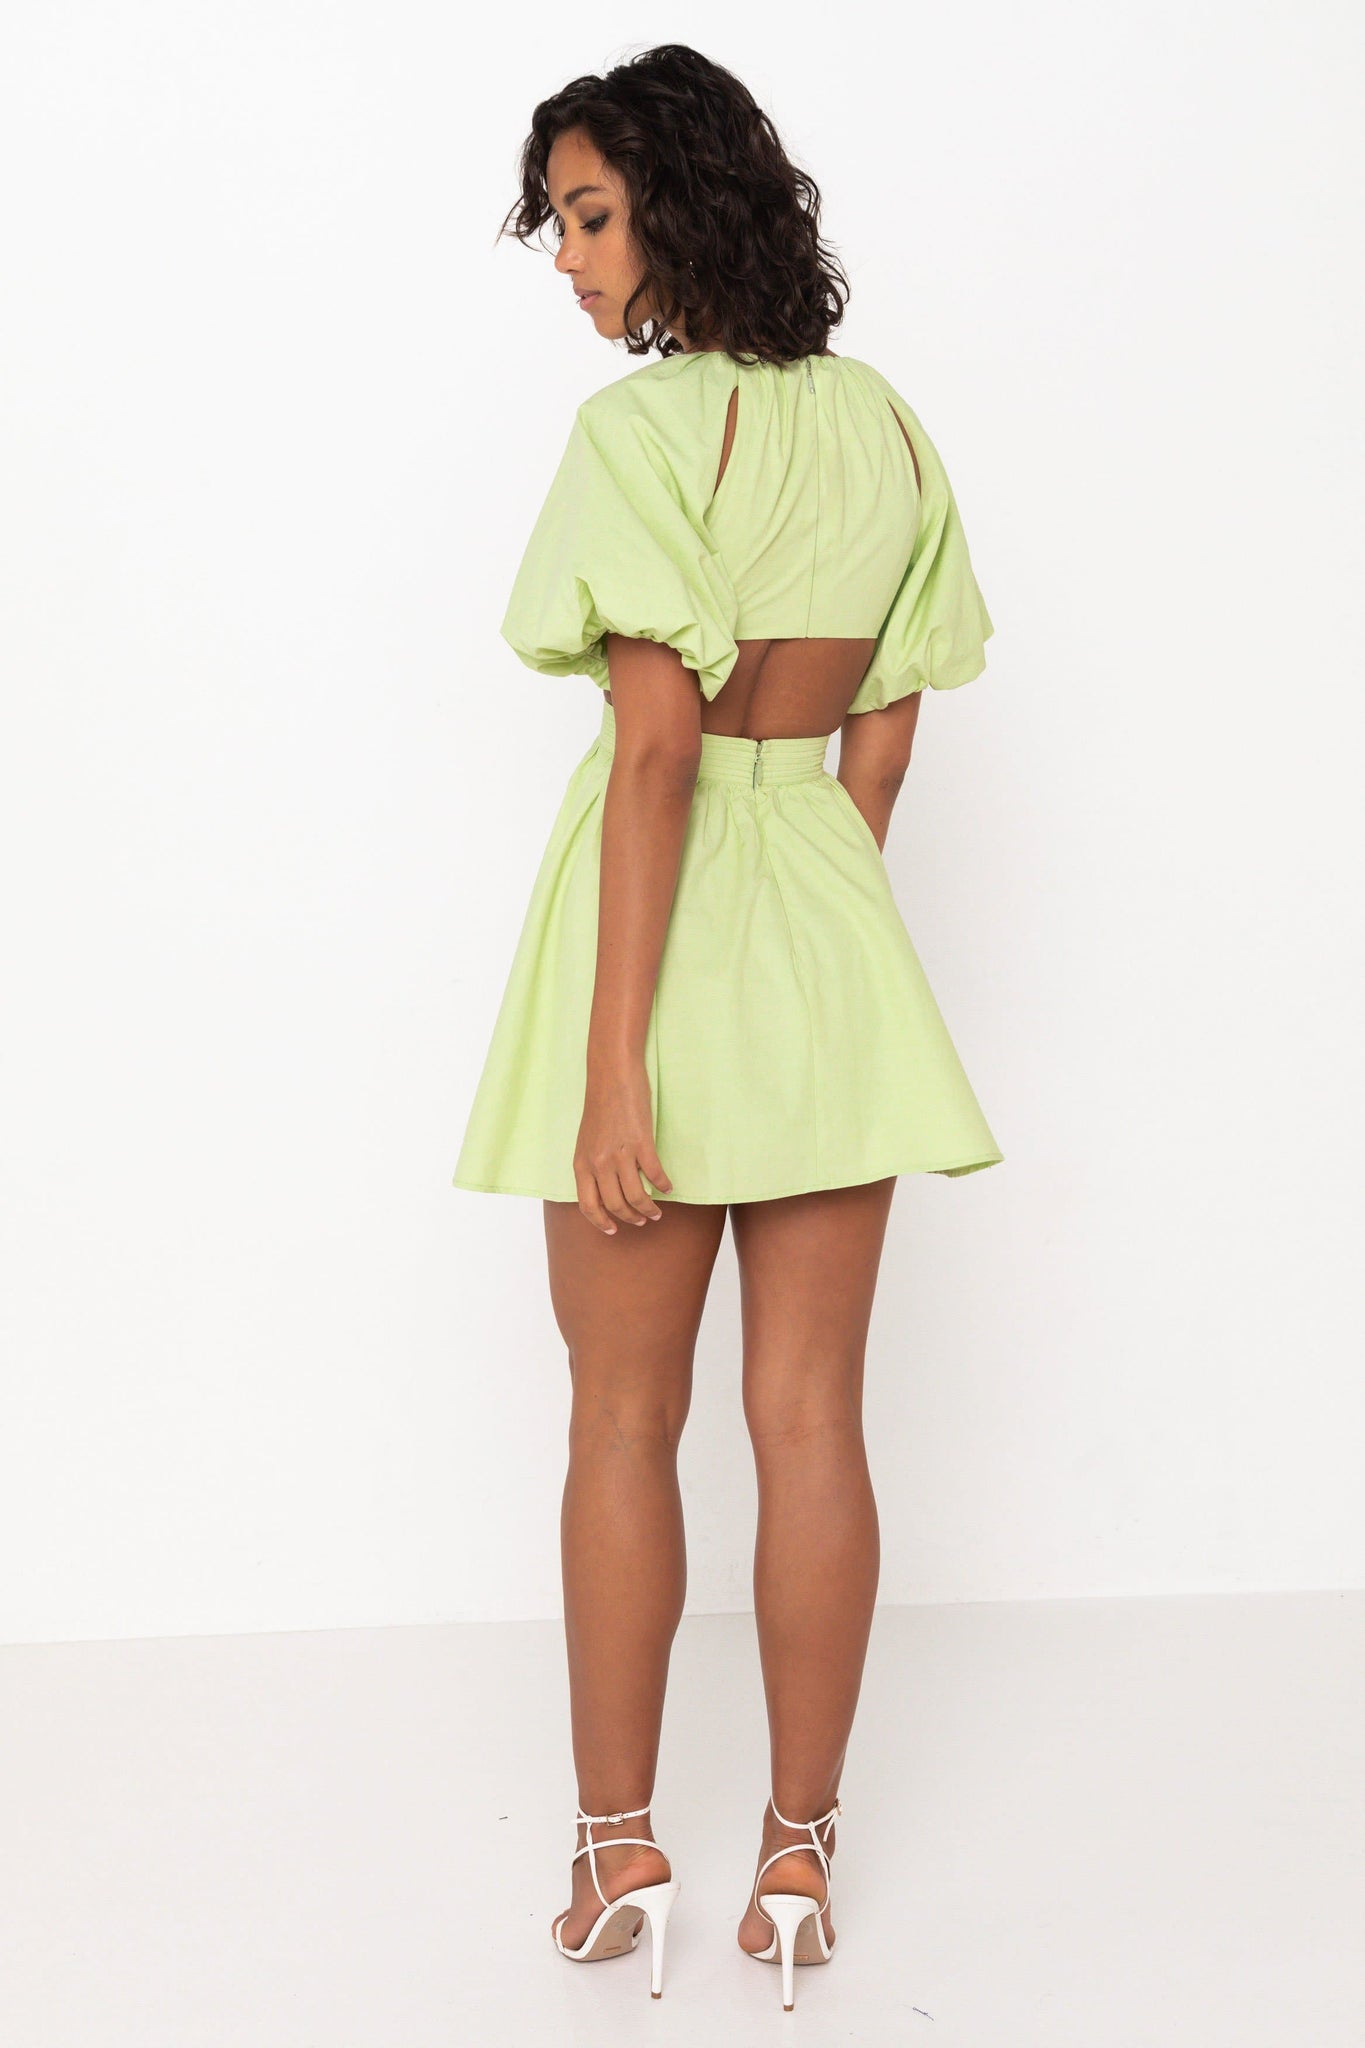 The Seahaze Mini Dress